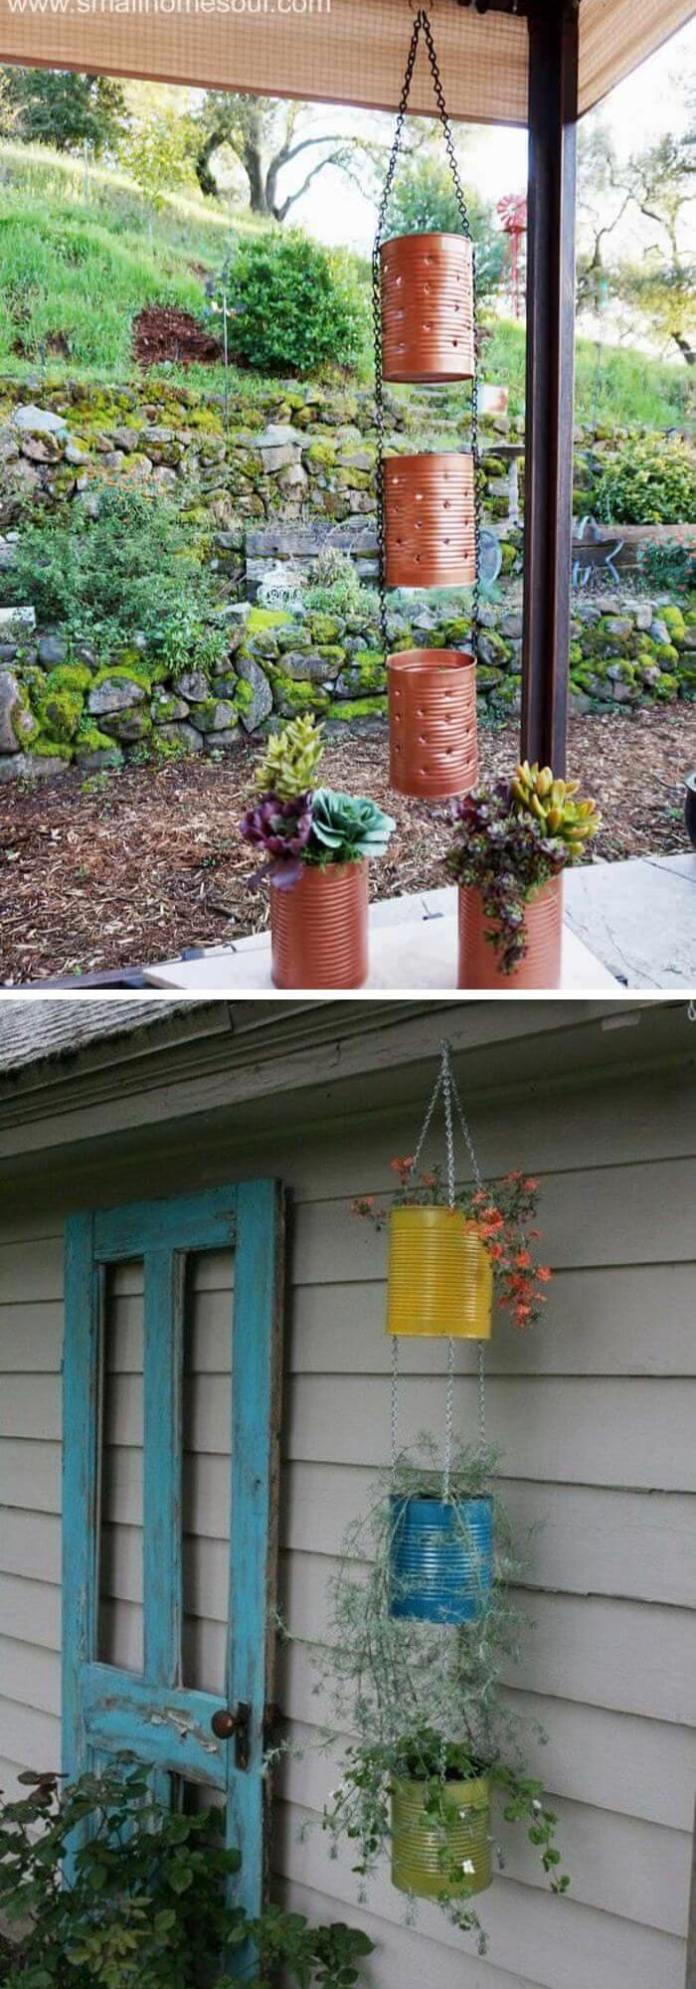 Recycled Tin Can Lantern and Hanging Planter